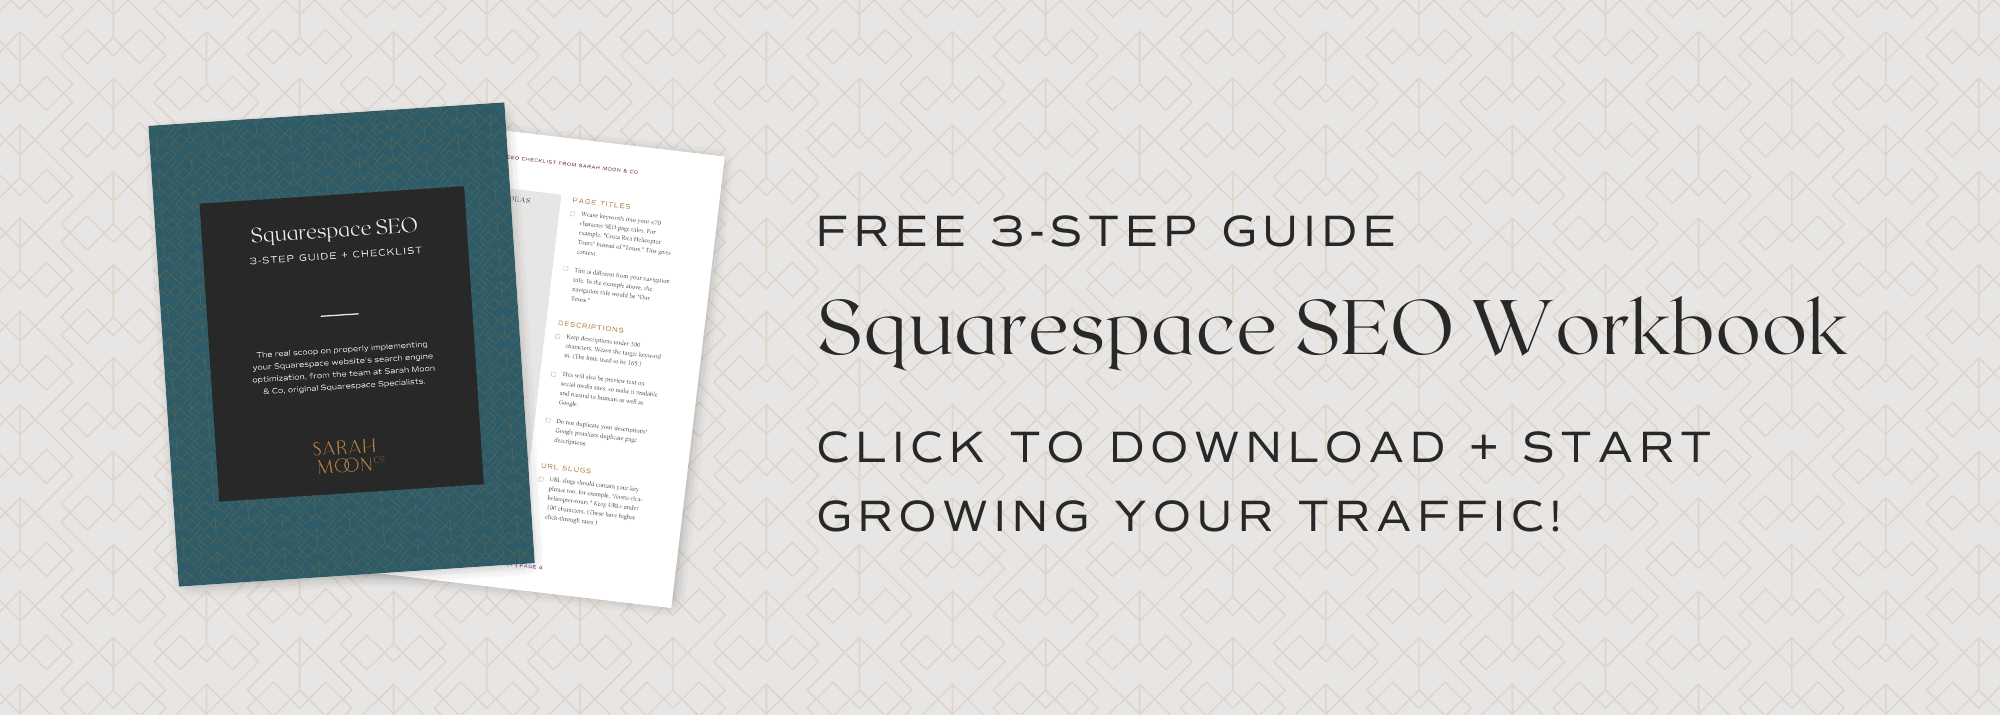 Free Squarespace SEO Guidebook - Updated for 7.1 in 2021!